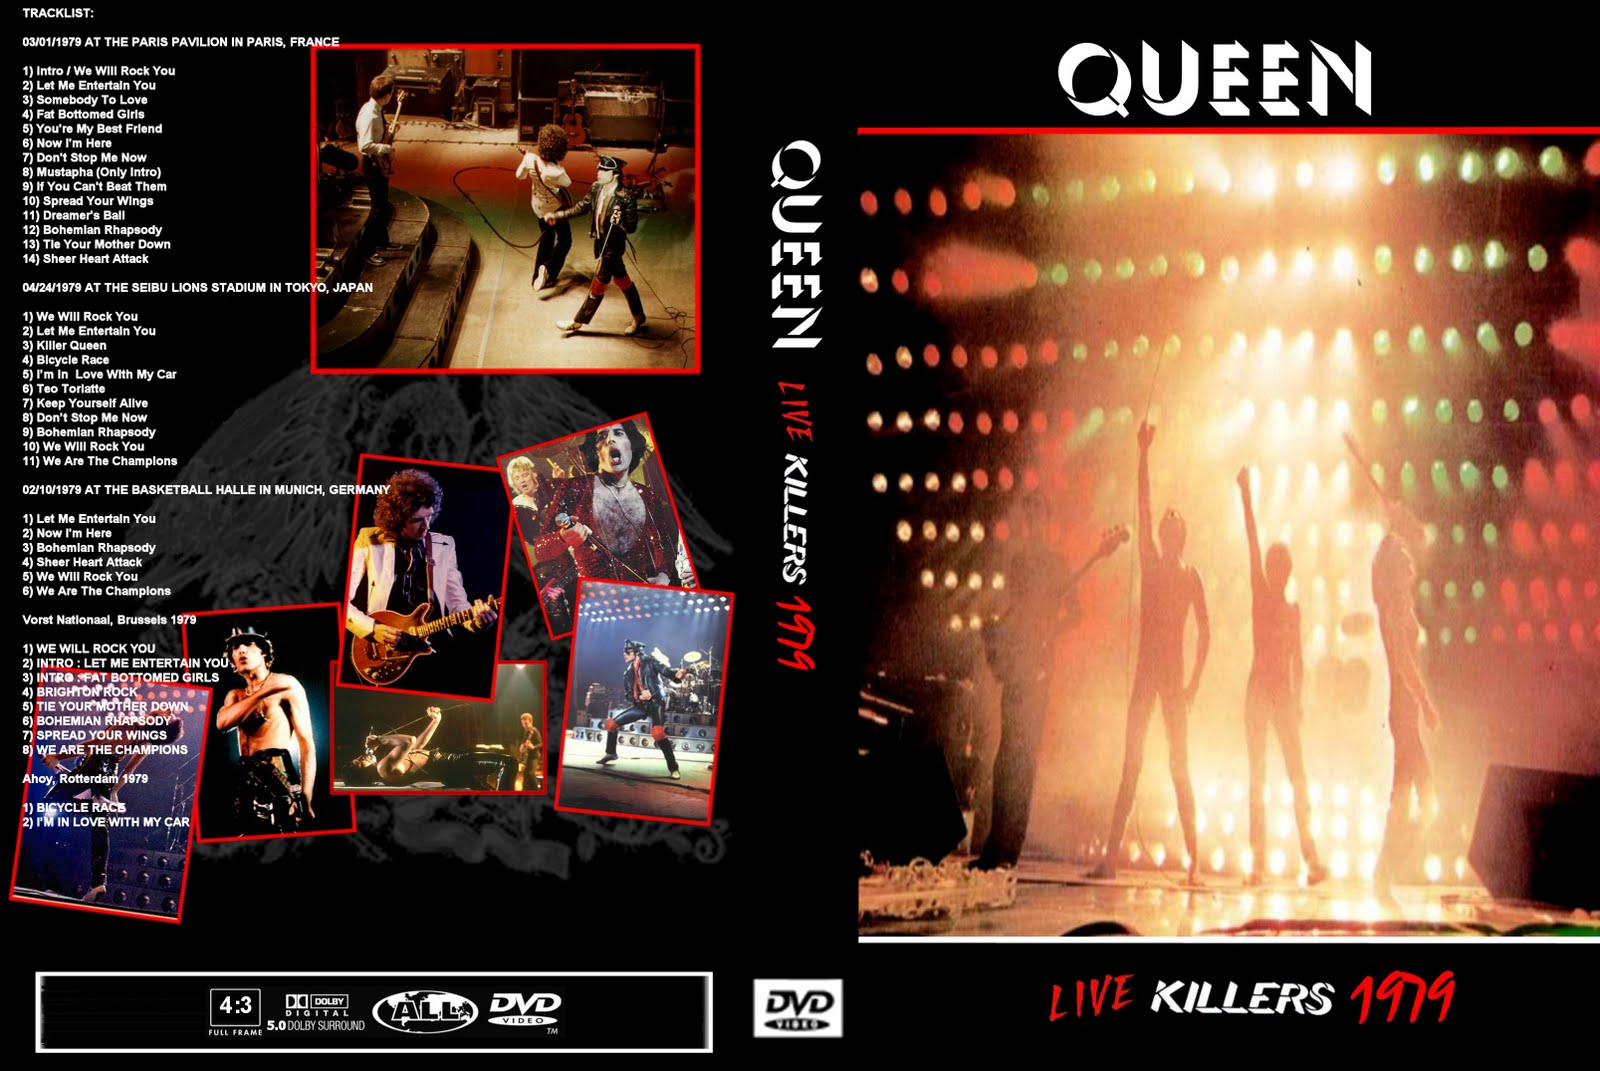 Queen music download : Queen Live Killers Tour Dvd By T U B E